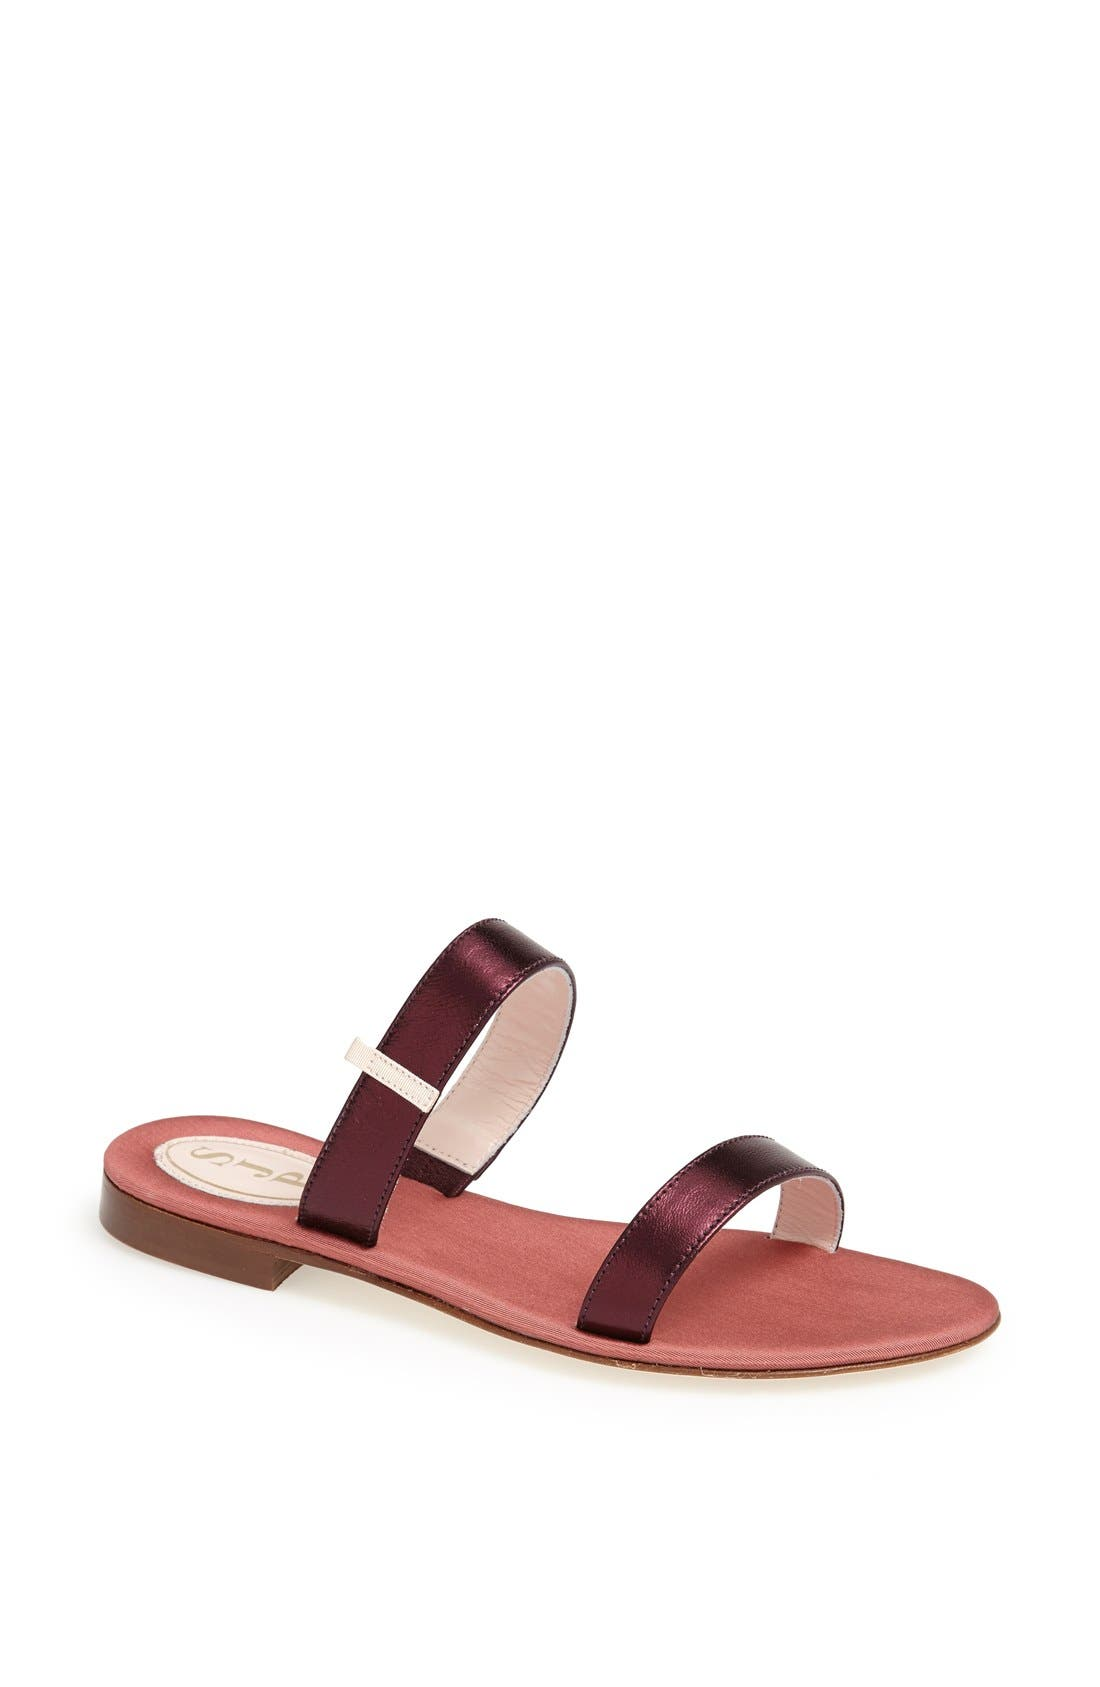 Alternate Image 1 Selected - SJP 'Wallace' Sandal (Nordstrom Exclusive)